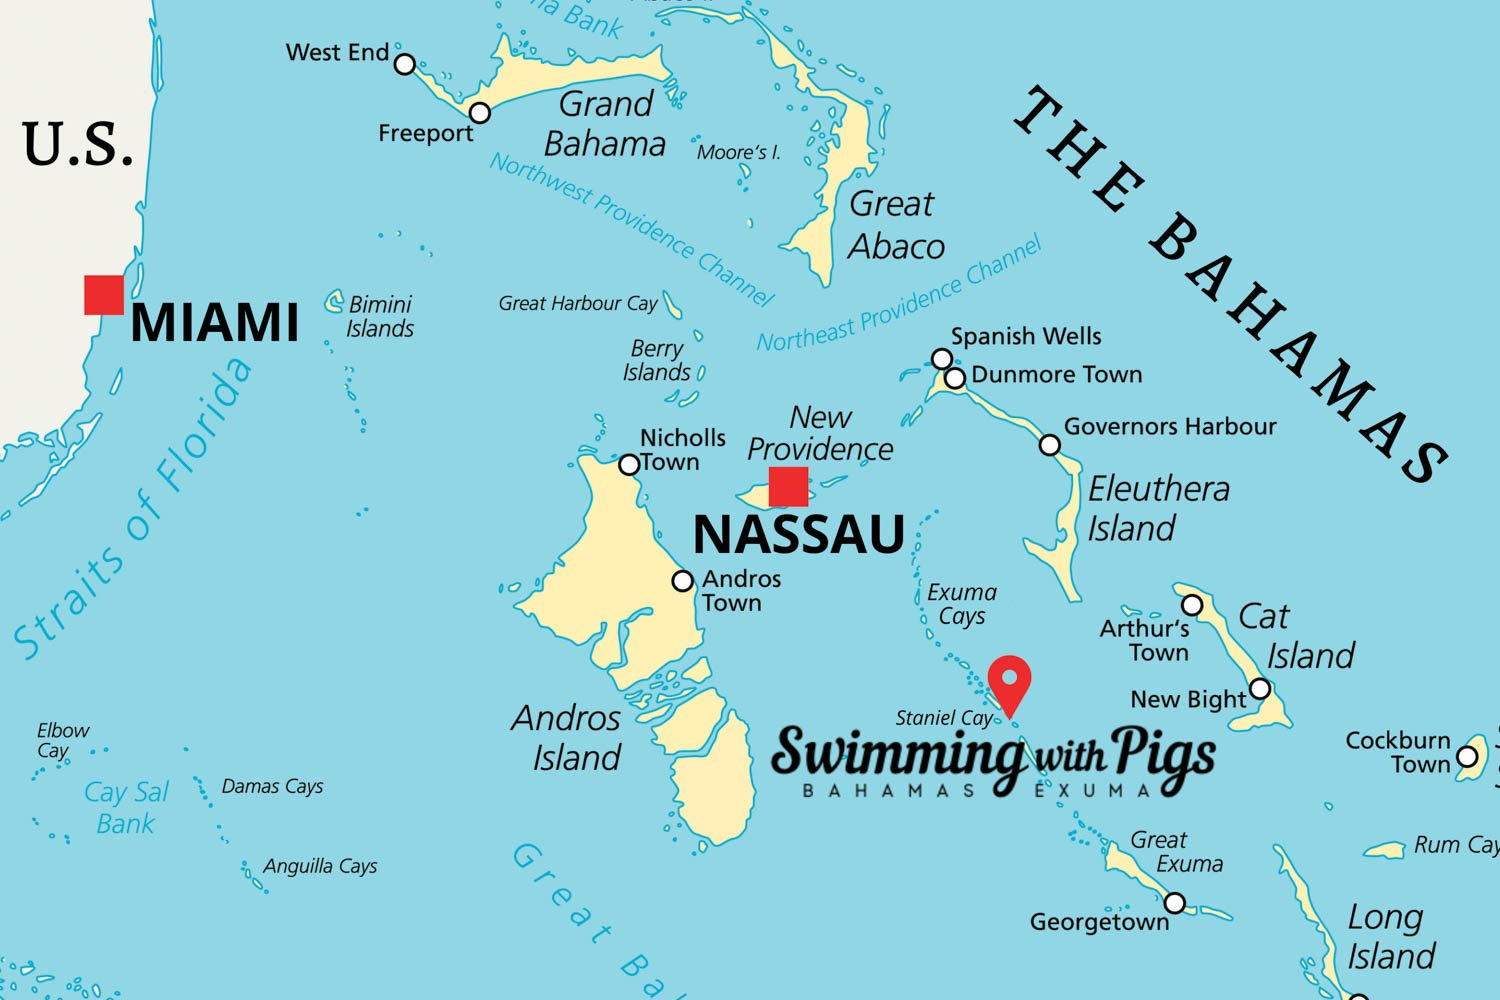 Pig Beach map shows the location of the Swimming with Pigs in Exuma. The Island with Pigs is located in the Exuma Cays next to Staniel Cay in the Bahamas.